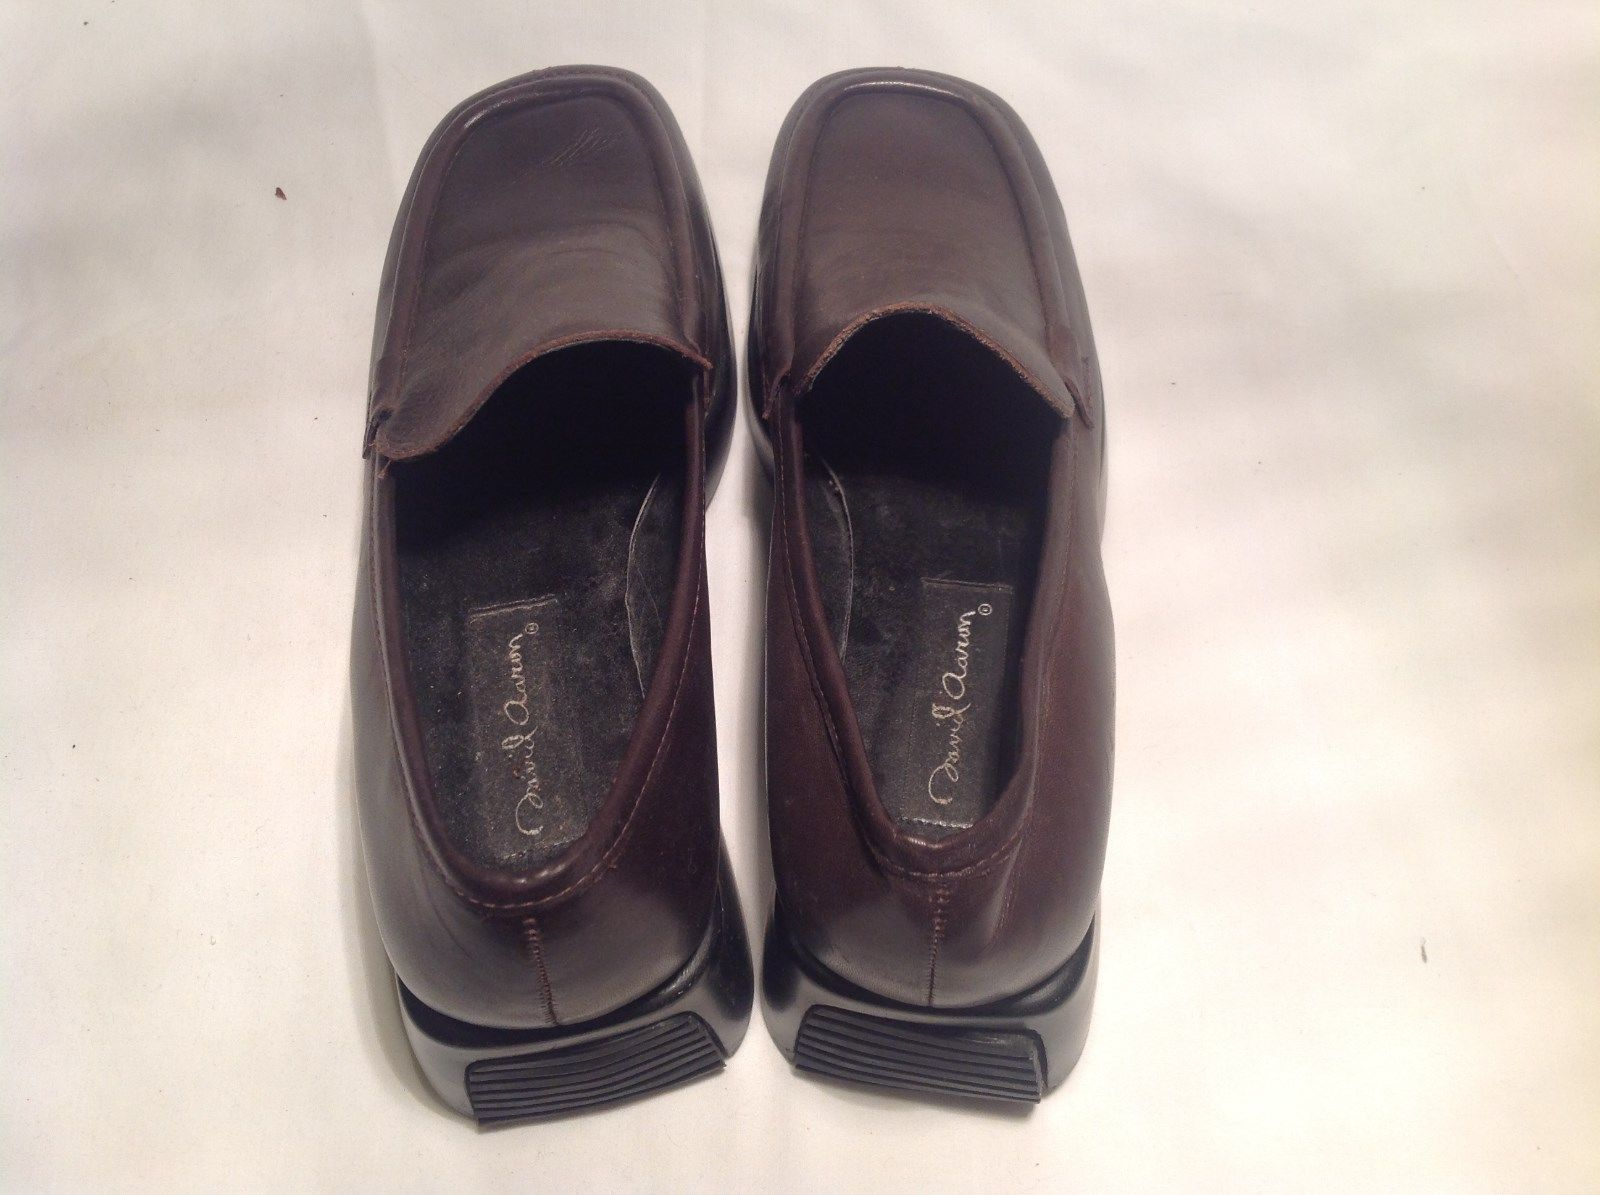 David Aaron Black and Brown Leather Dress Shoes Large Platform Size 8